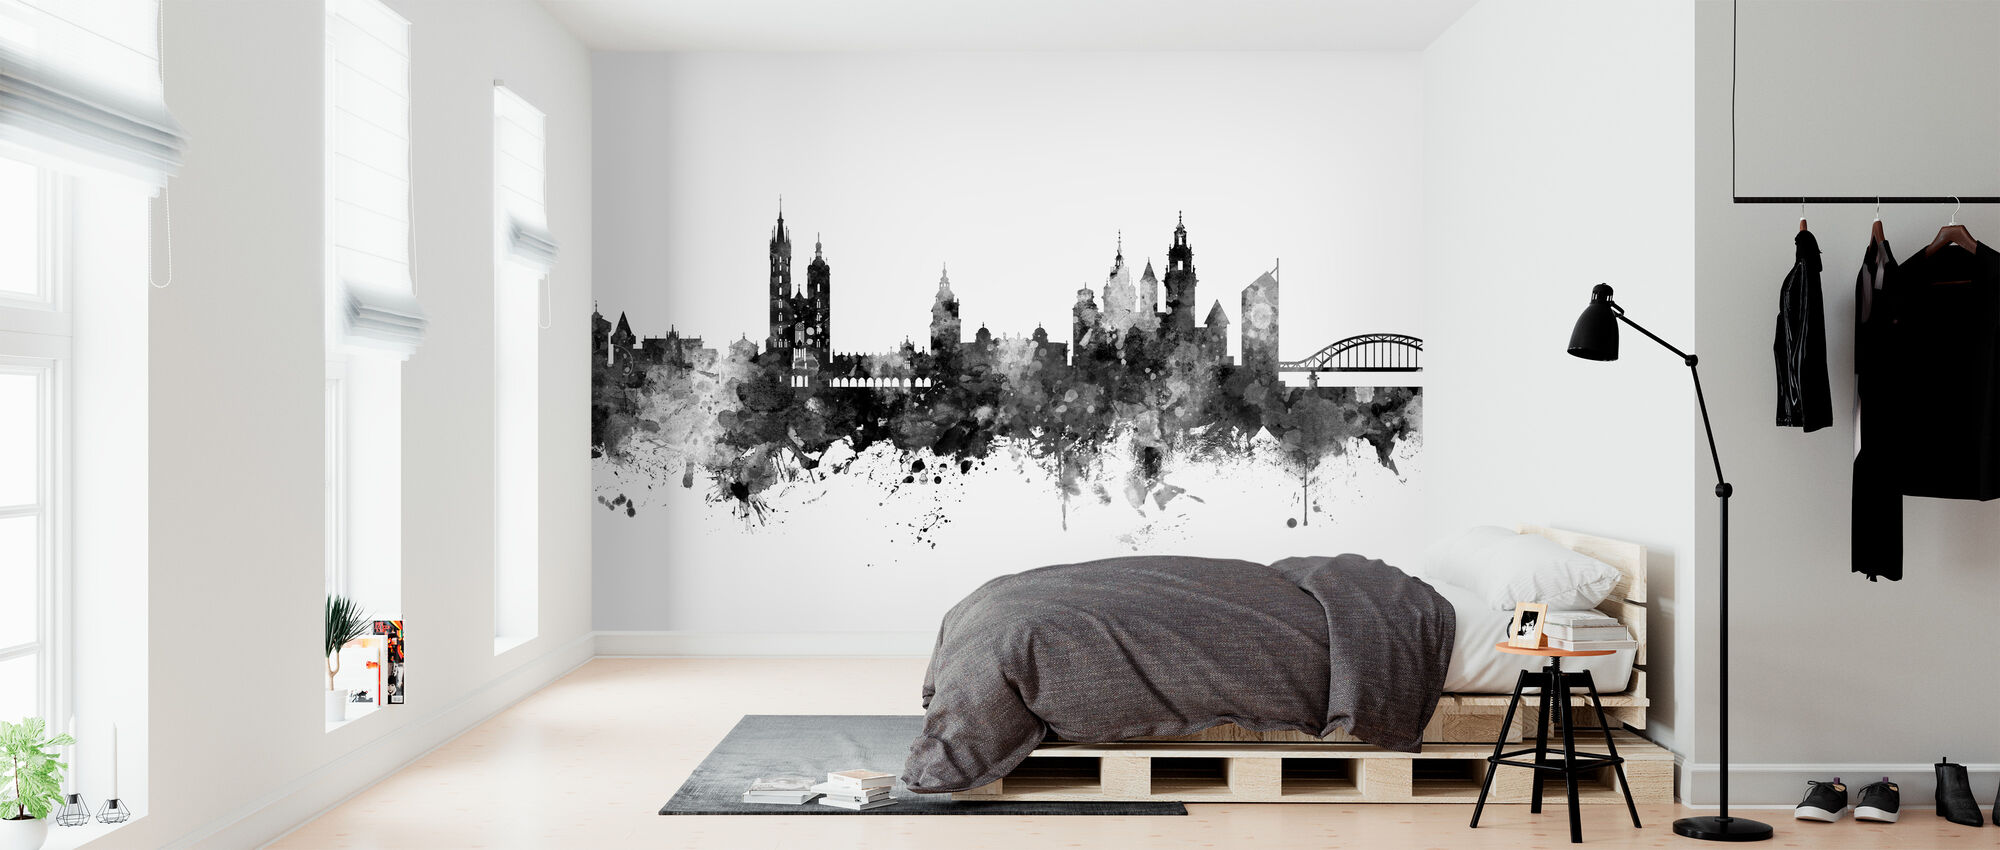 Krakow Poland Skyline Black - Wallpaper - Bedroom